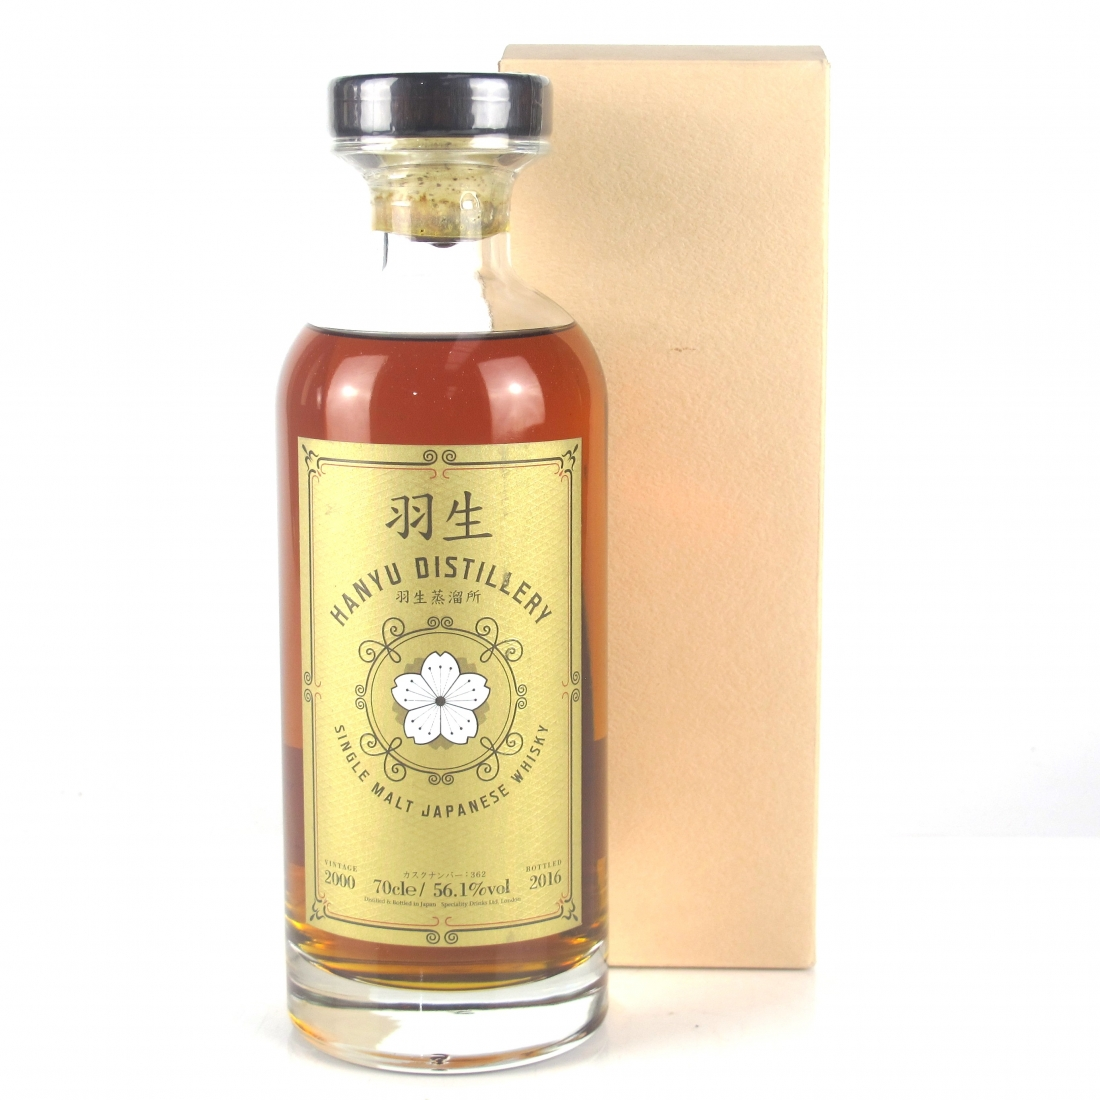 Hanyu 2000 Single Cask #362